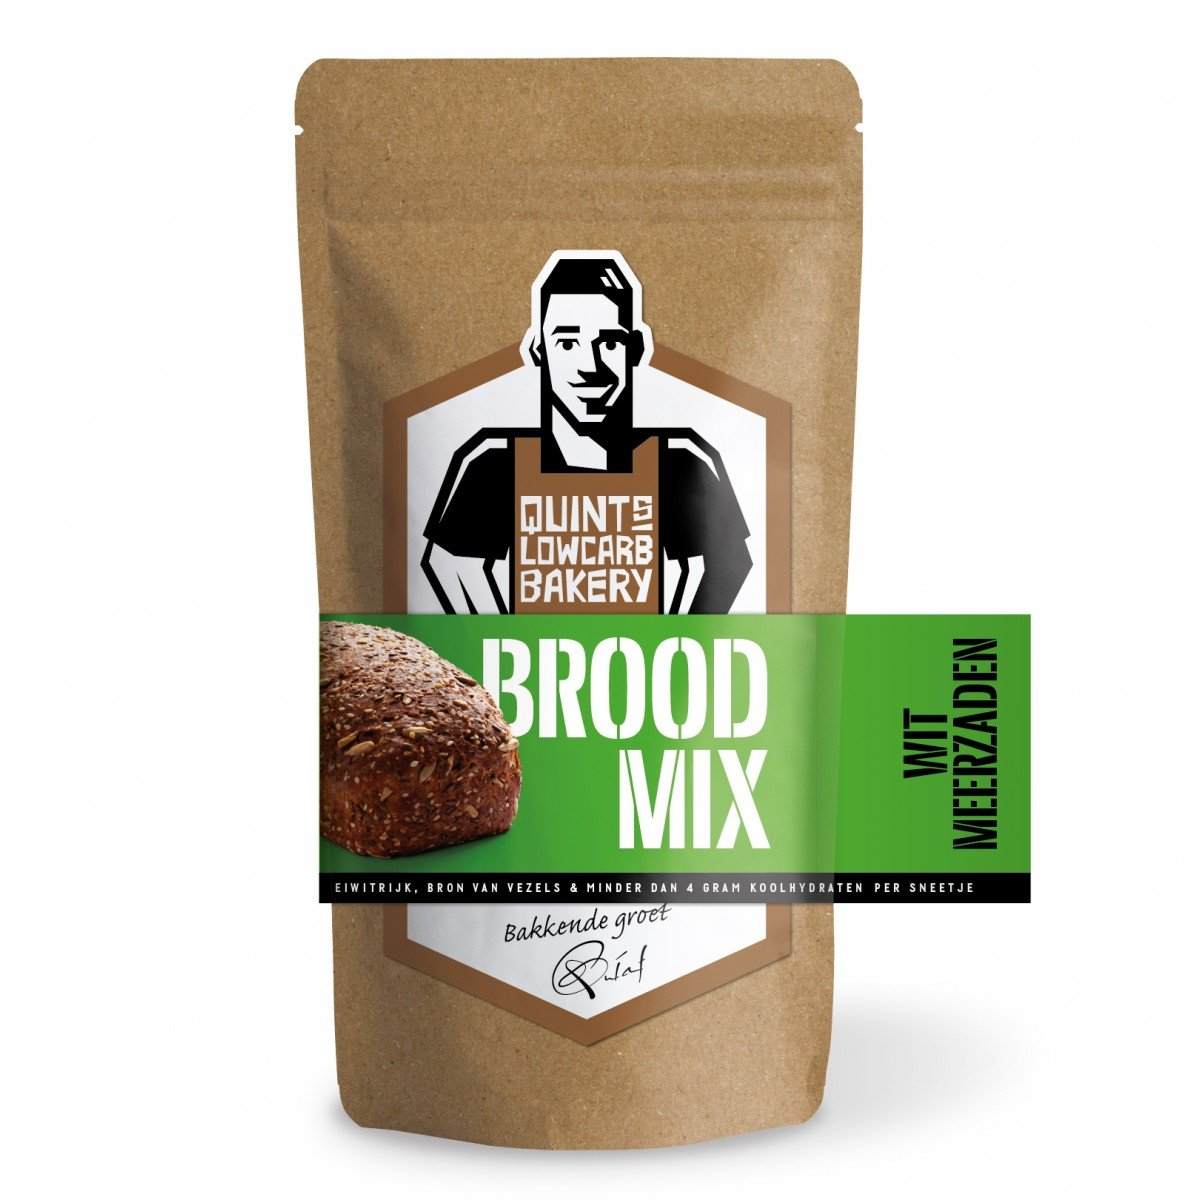 Quints low carb Bakery broodmix